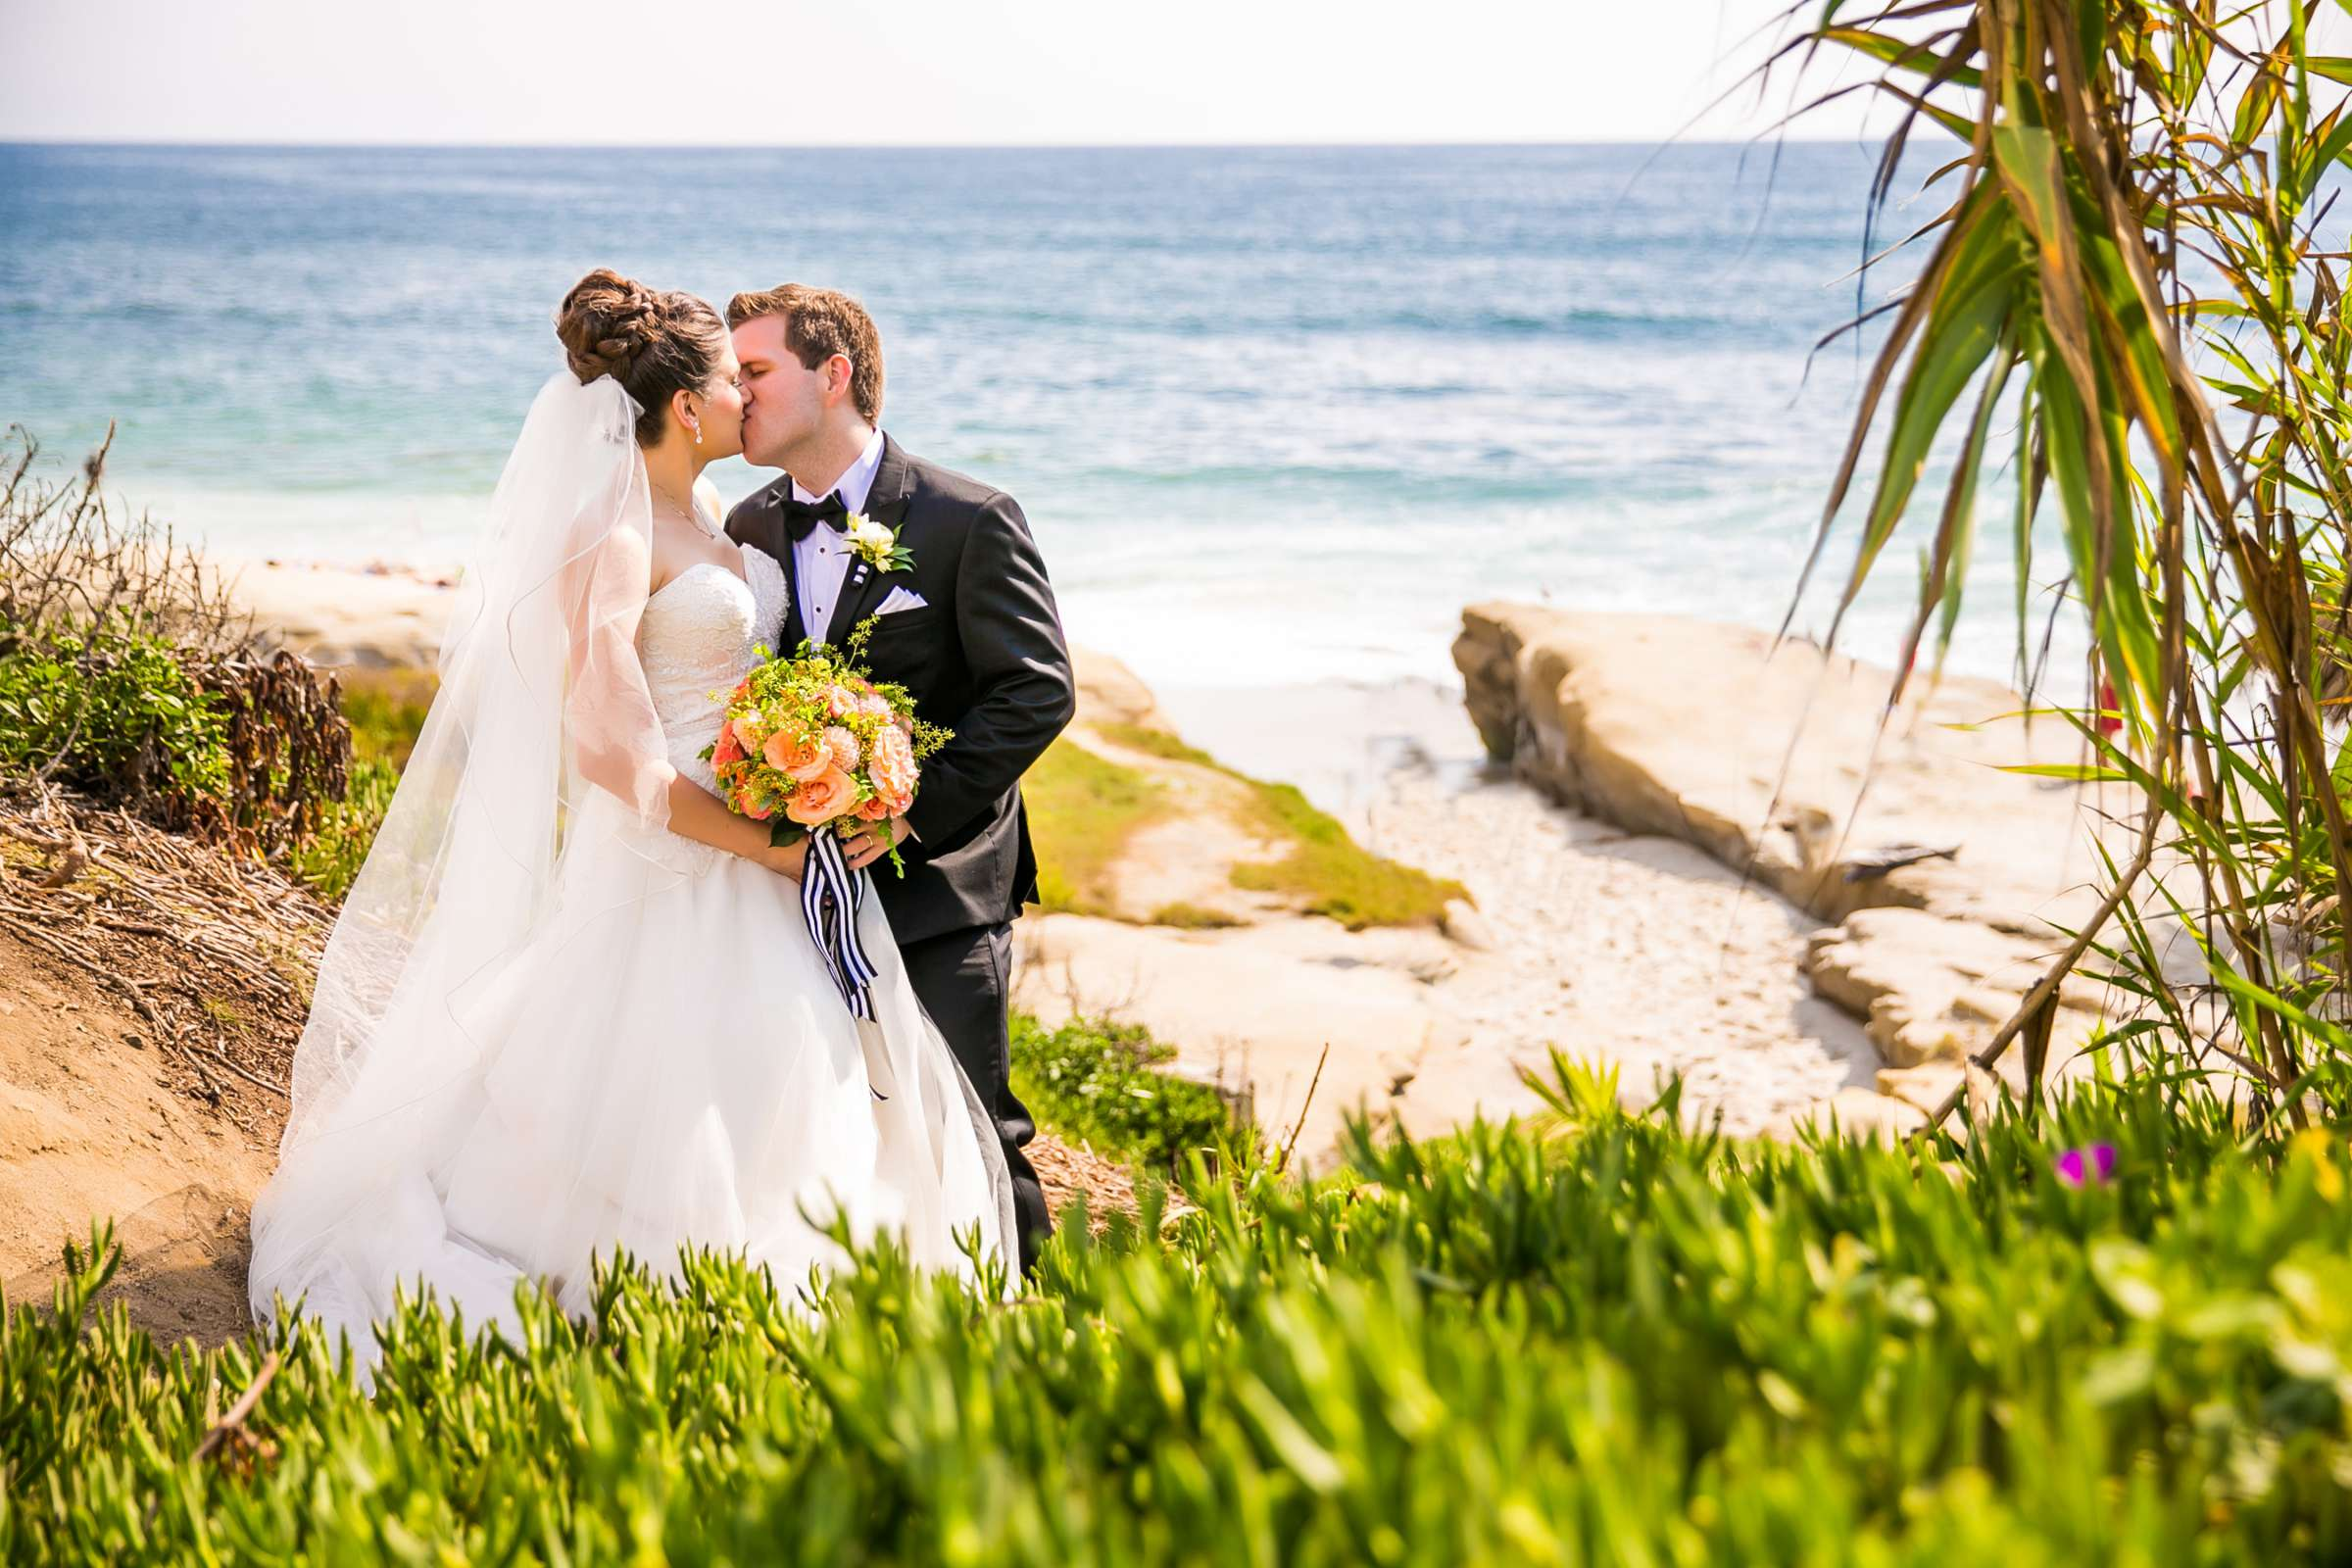 Bahia Hotel Wedding coordinated by I Do Weddings, Meredith and Jack Wedding Photo #55 by True Photography